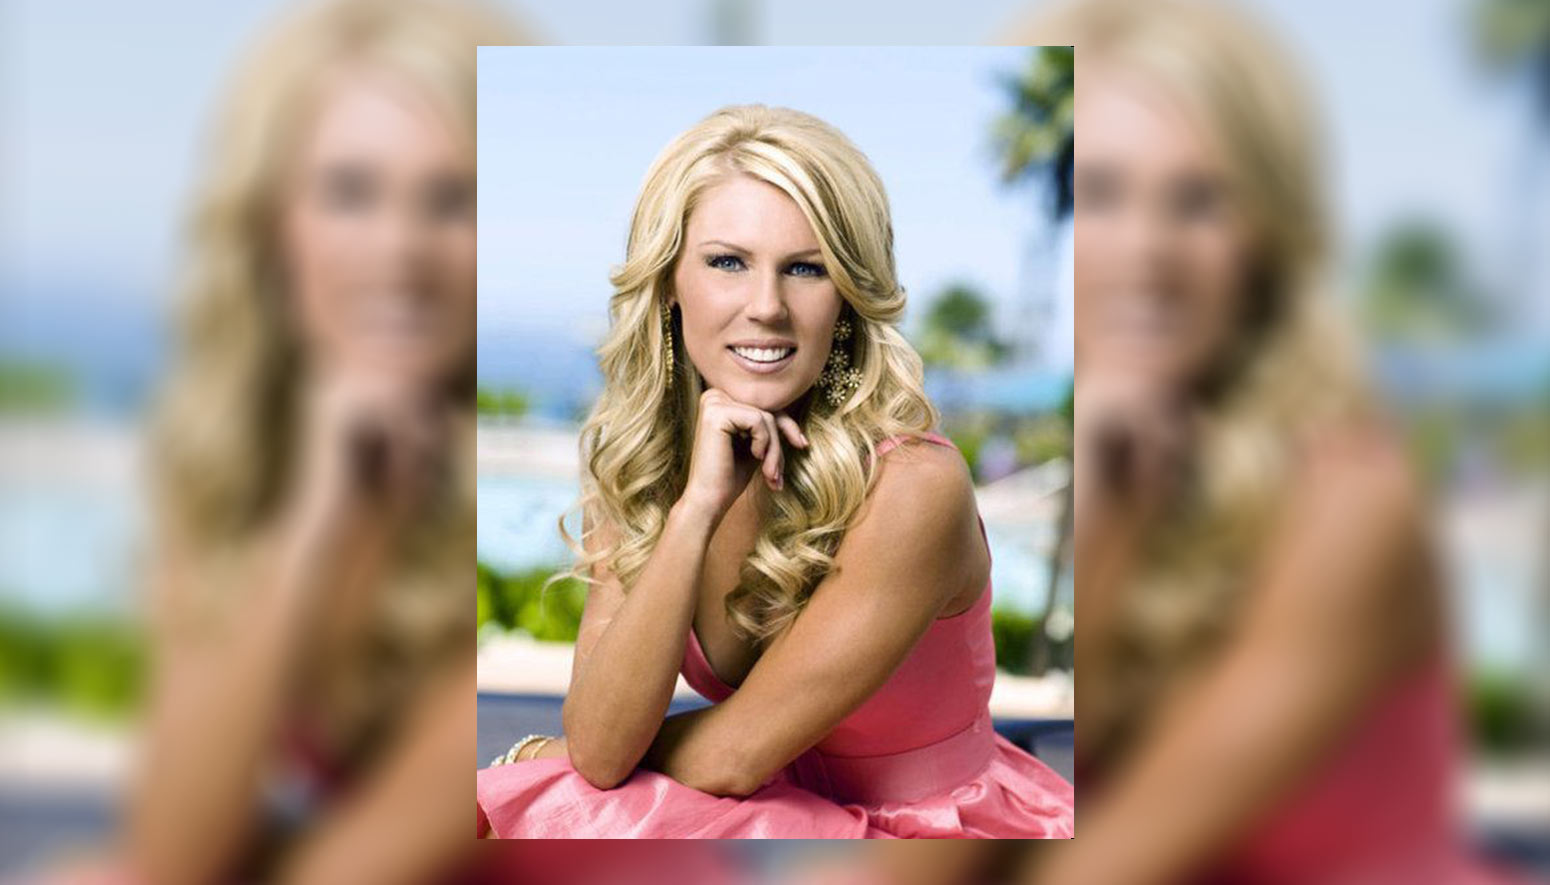 Gretchen Rossi. (Photo courtesy of Bravo)